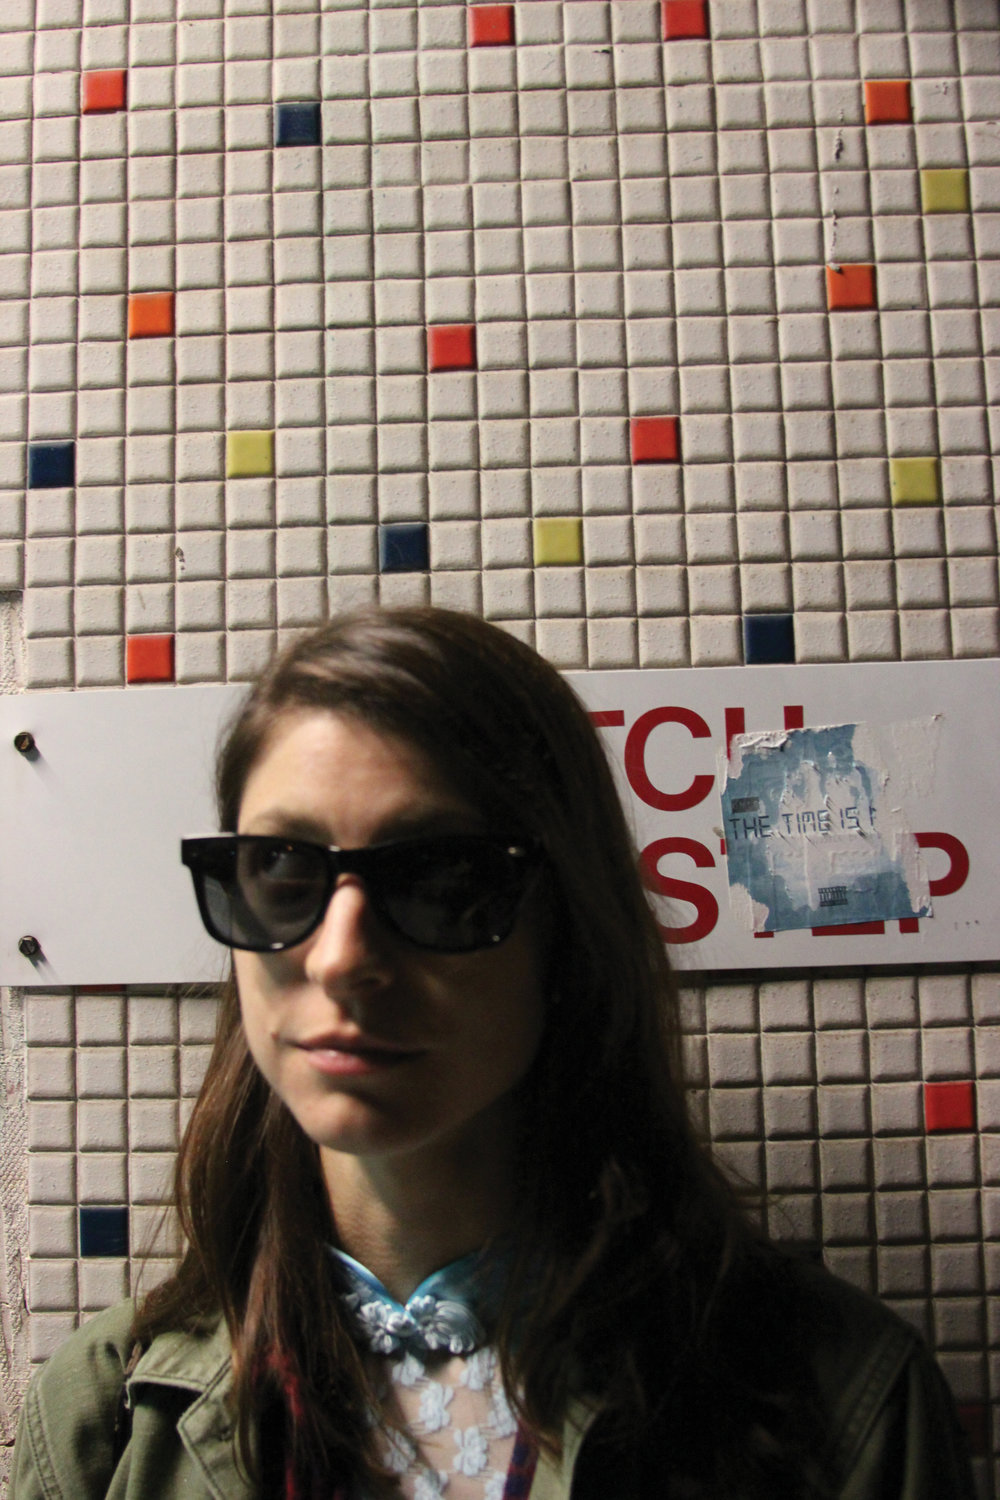 Colleen Green pic 2 cmyk.jpg